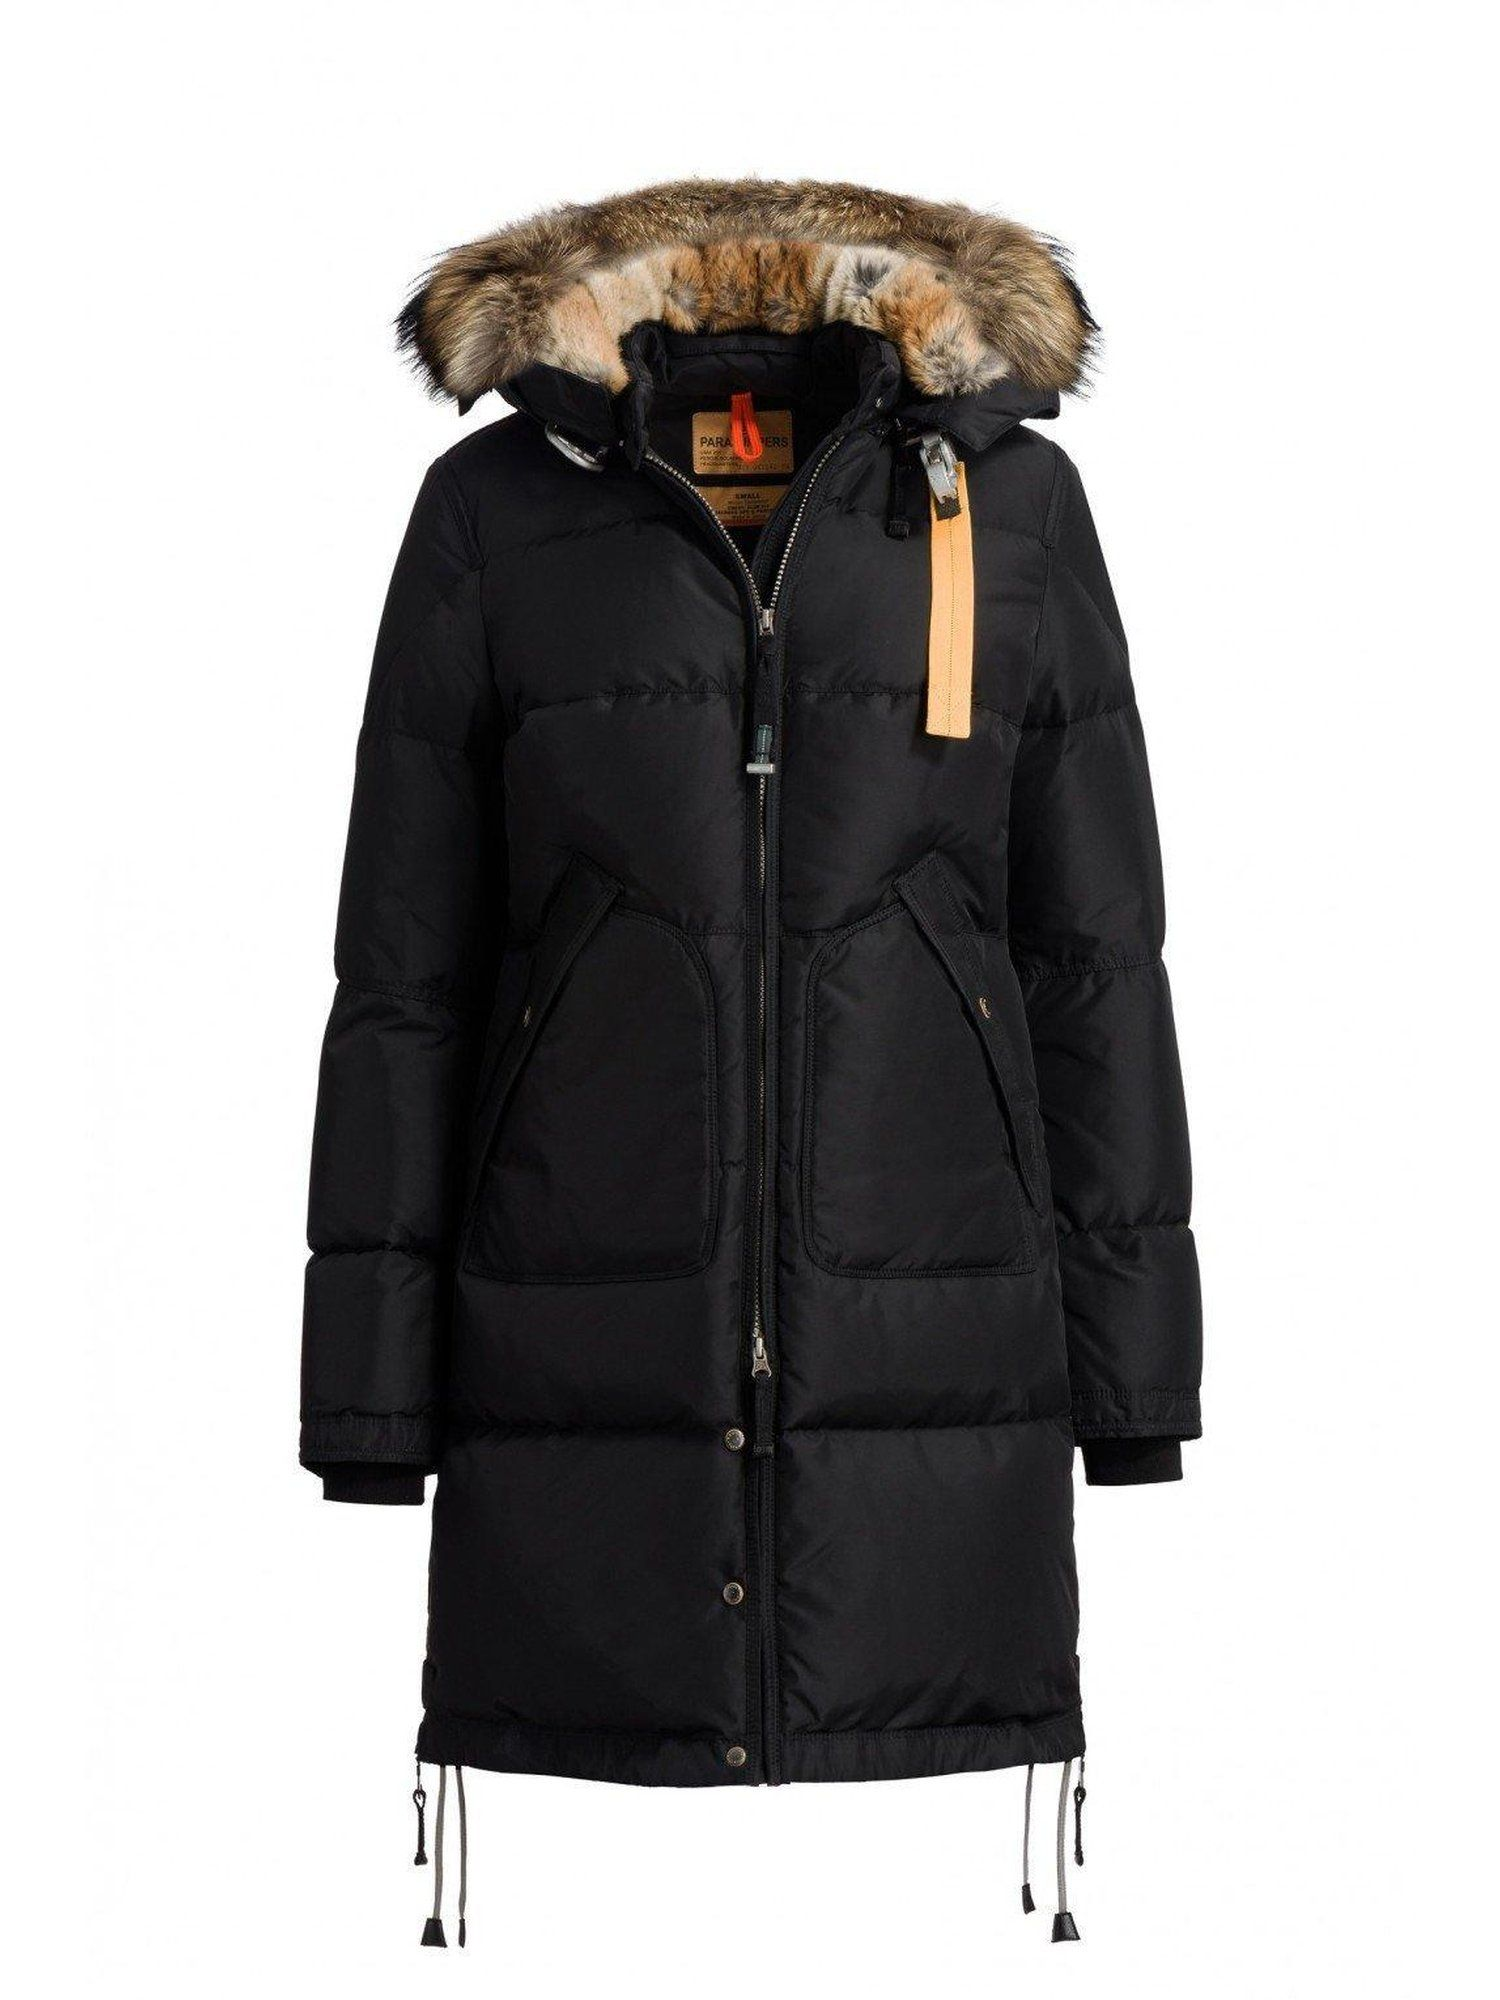 8651a3eb0 Parajumpers - Long Bear - Parka Jacket - Black in 2019 | Products ...